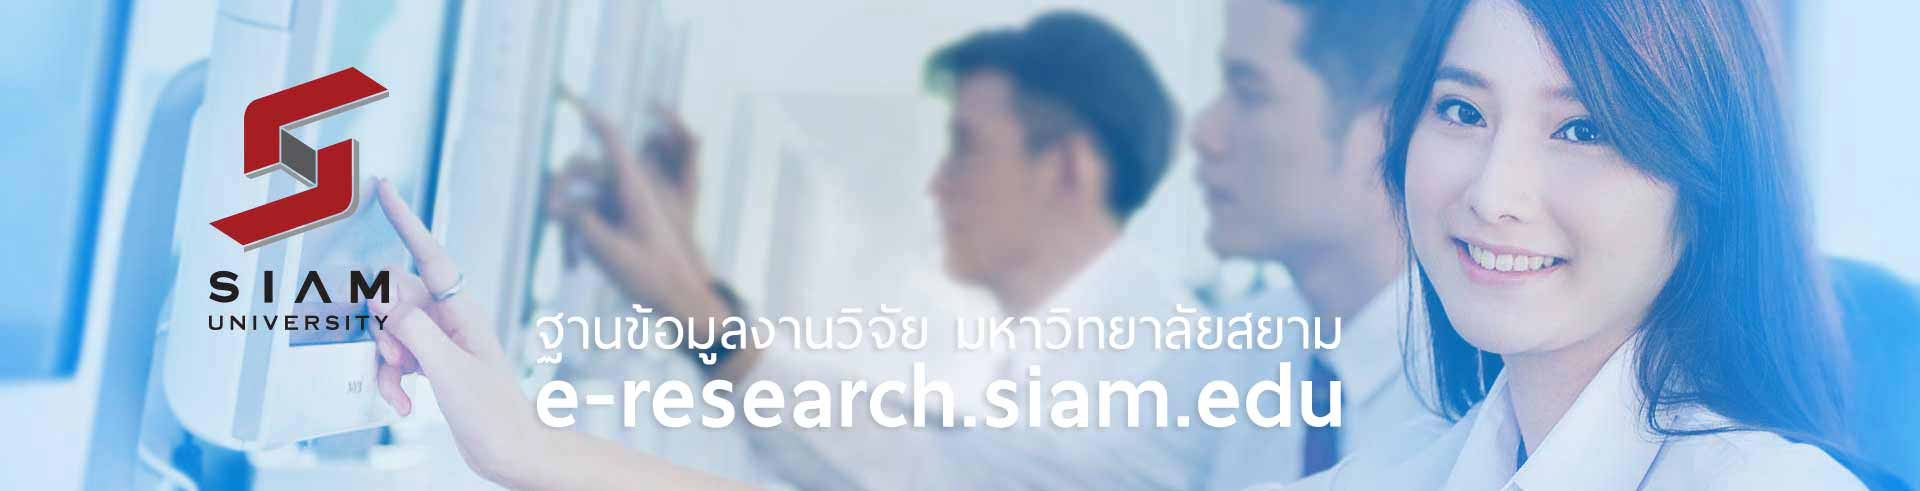 RESEARCH ON FINANCIAL RISK ASSESSMENT OF METAL PACKAGING ENTERPRISES: CASE STUDY ON CHINA ALUMINUM CANS SHAREHOLDING LIMITED COMPANY (60-0369) - ฐานข้อมูลงานวิจัย มหาวิทยาลัยสยาม